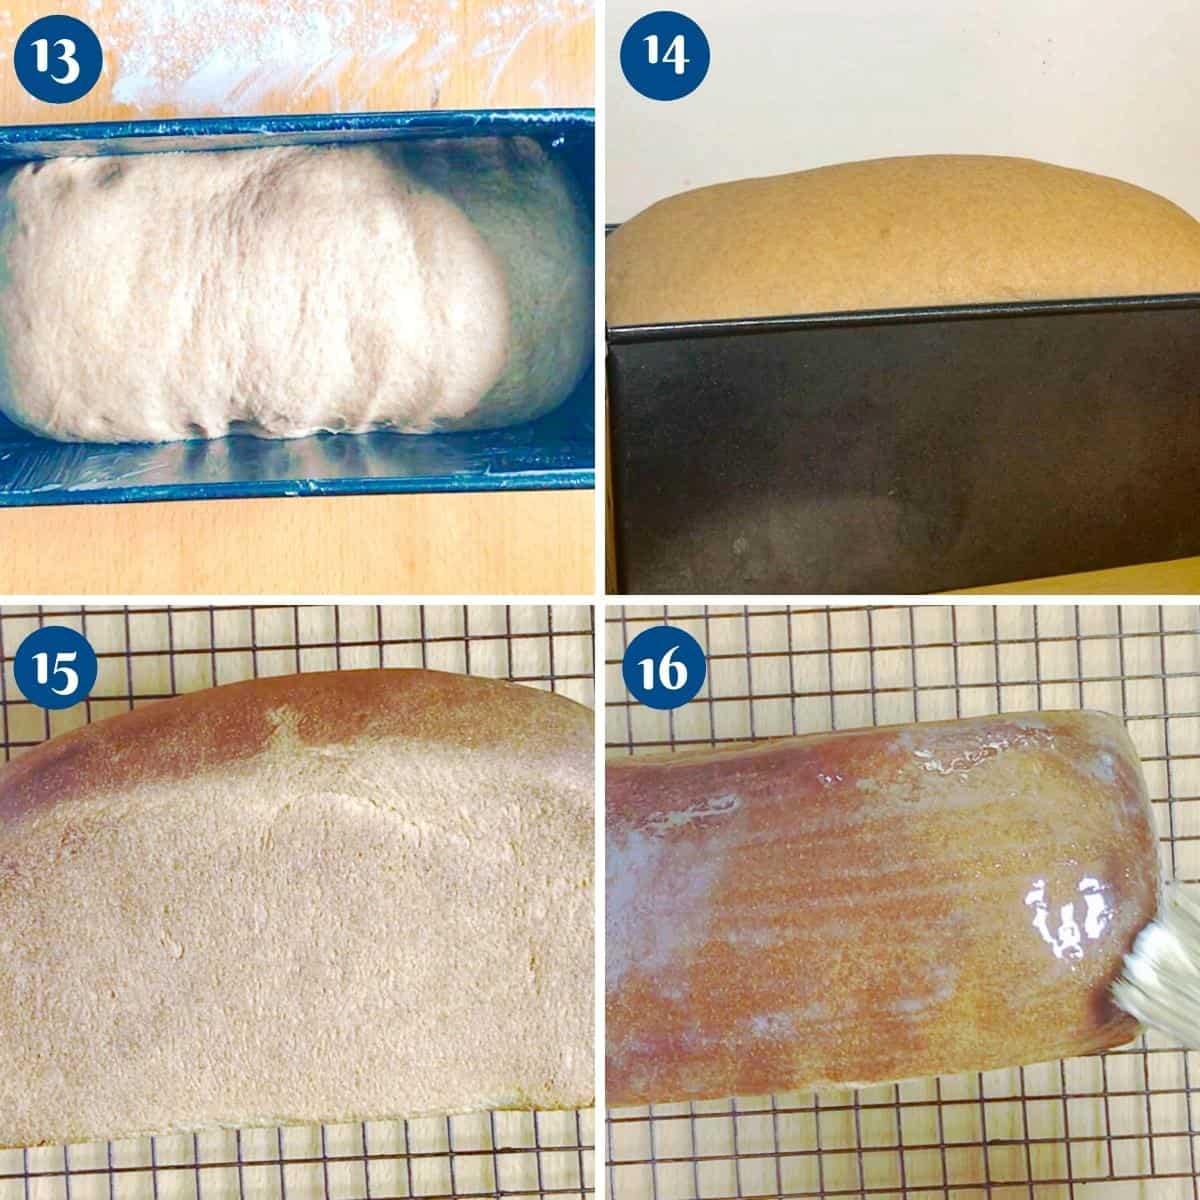 Progress pictures collage for baking the sandwich bread.